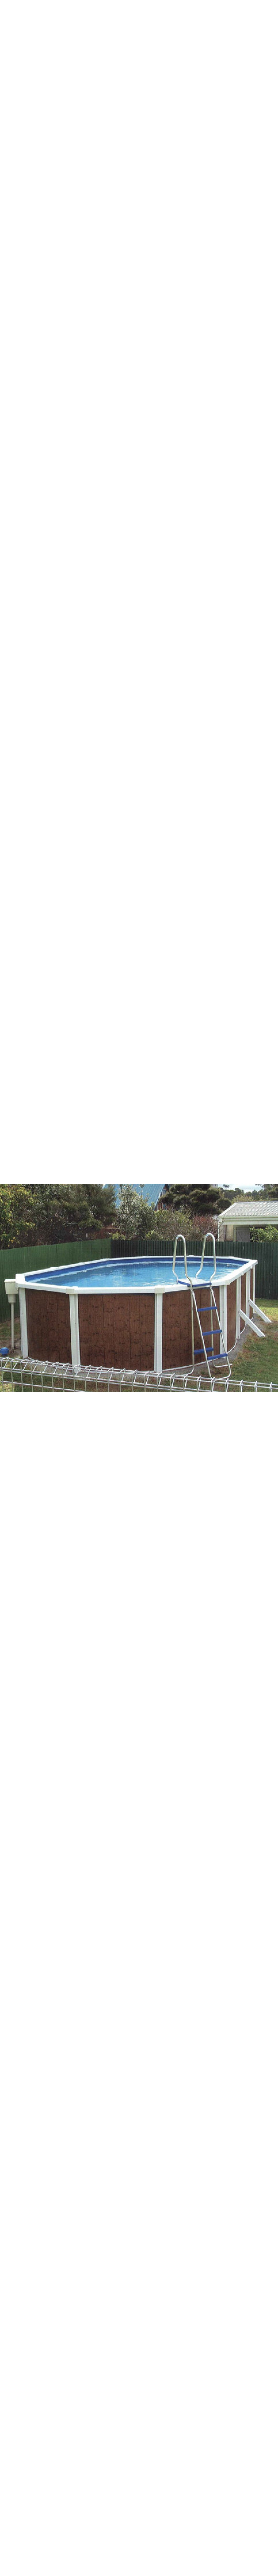 Big-Six Swimming Pool - installed above-ground.